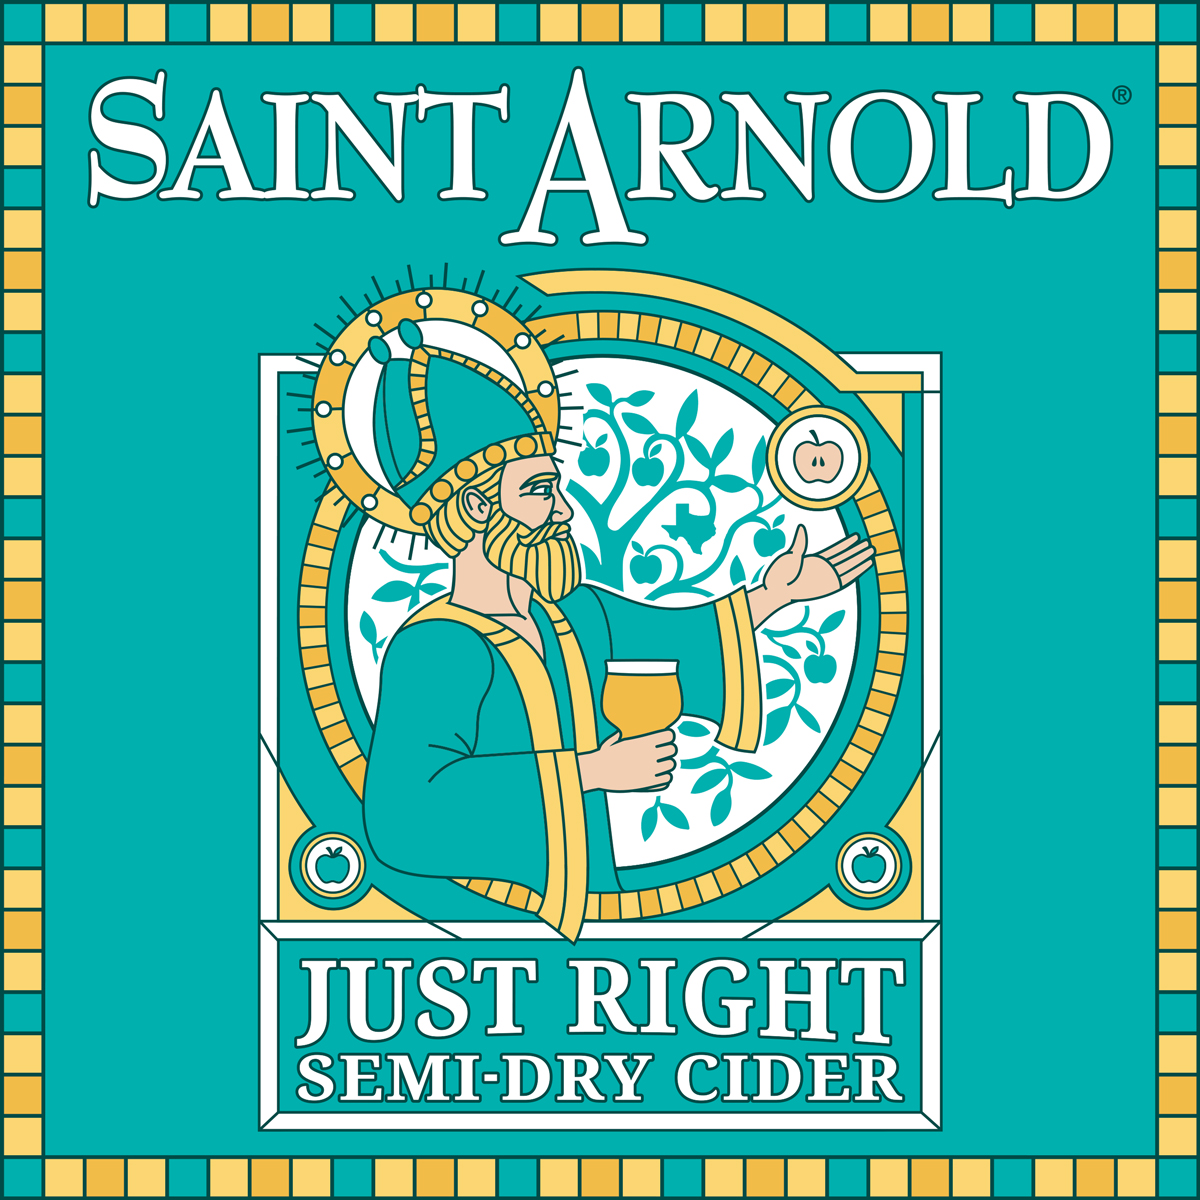 brand_image_just_right_semi_dry_cider